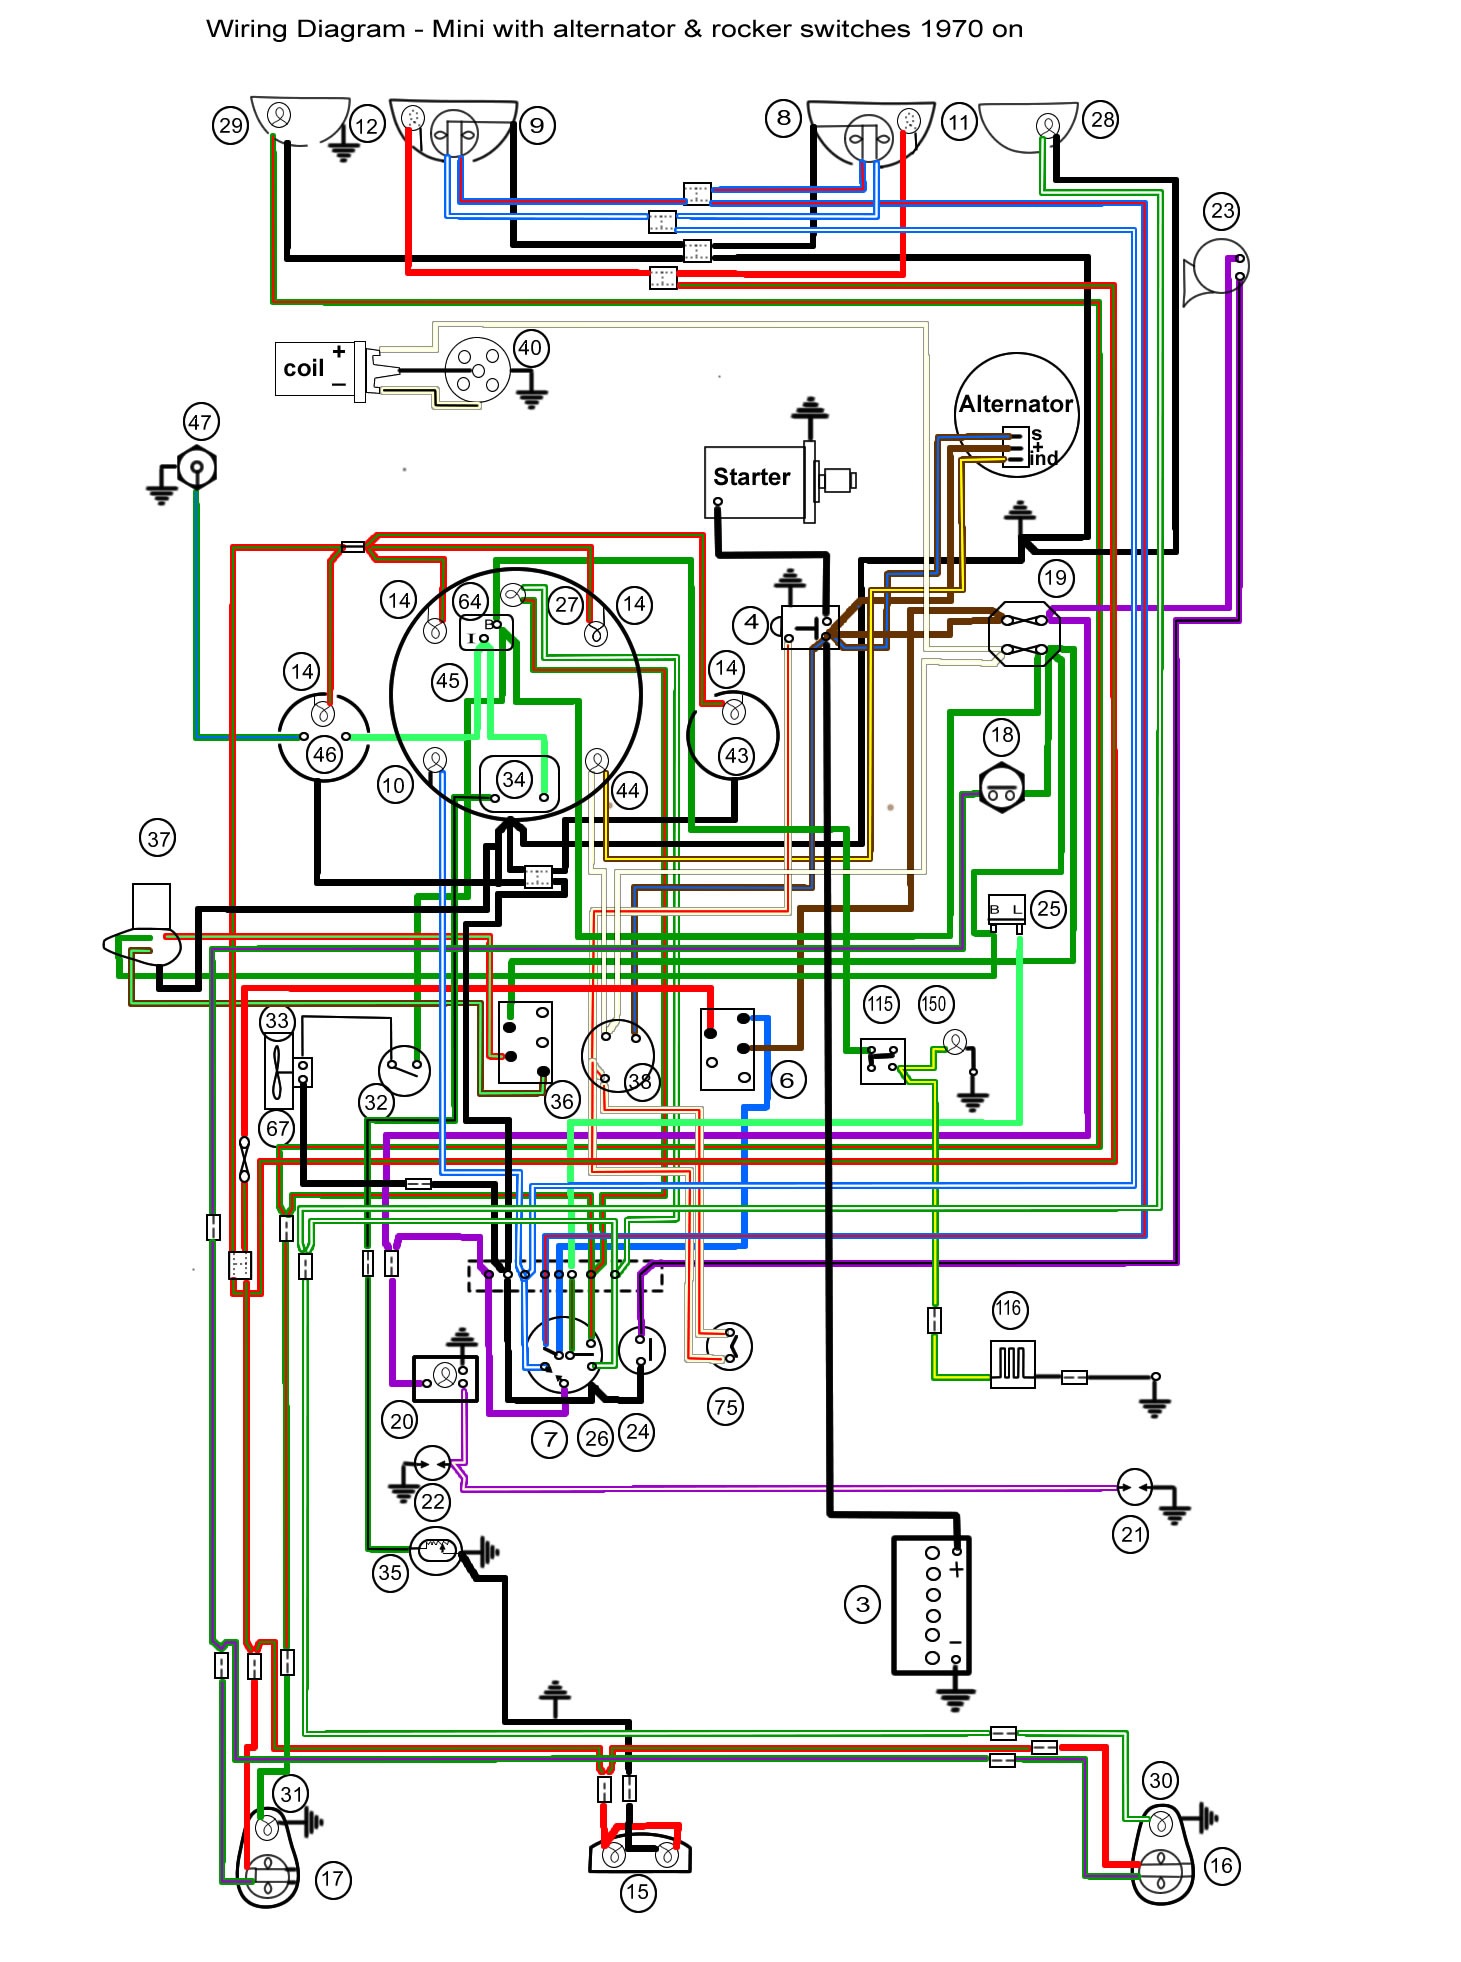 Electrical ColourWiringDiagram datsun 510 alternator wiring diagram porsche 911 alternator wiring Ford Alternator Wiring Diagram at webbmarketing.co